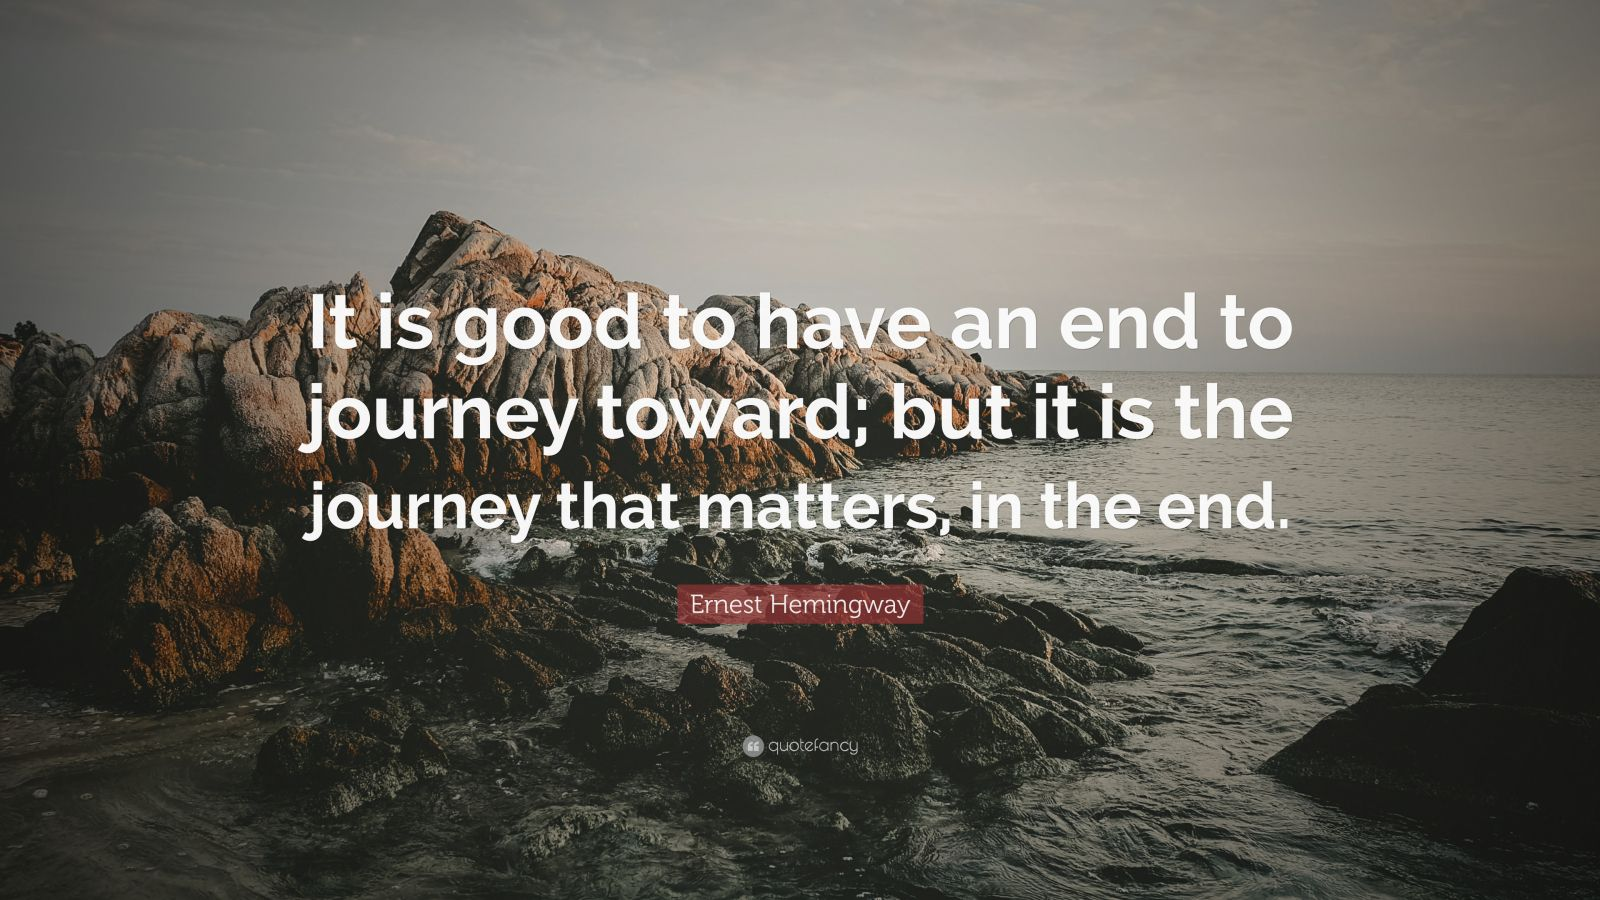 Ernest Hemingway Quote Wallpaper Ernest Hemingway Quote It Is Good To Have An End To